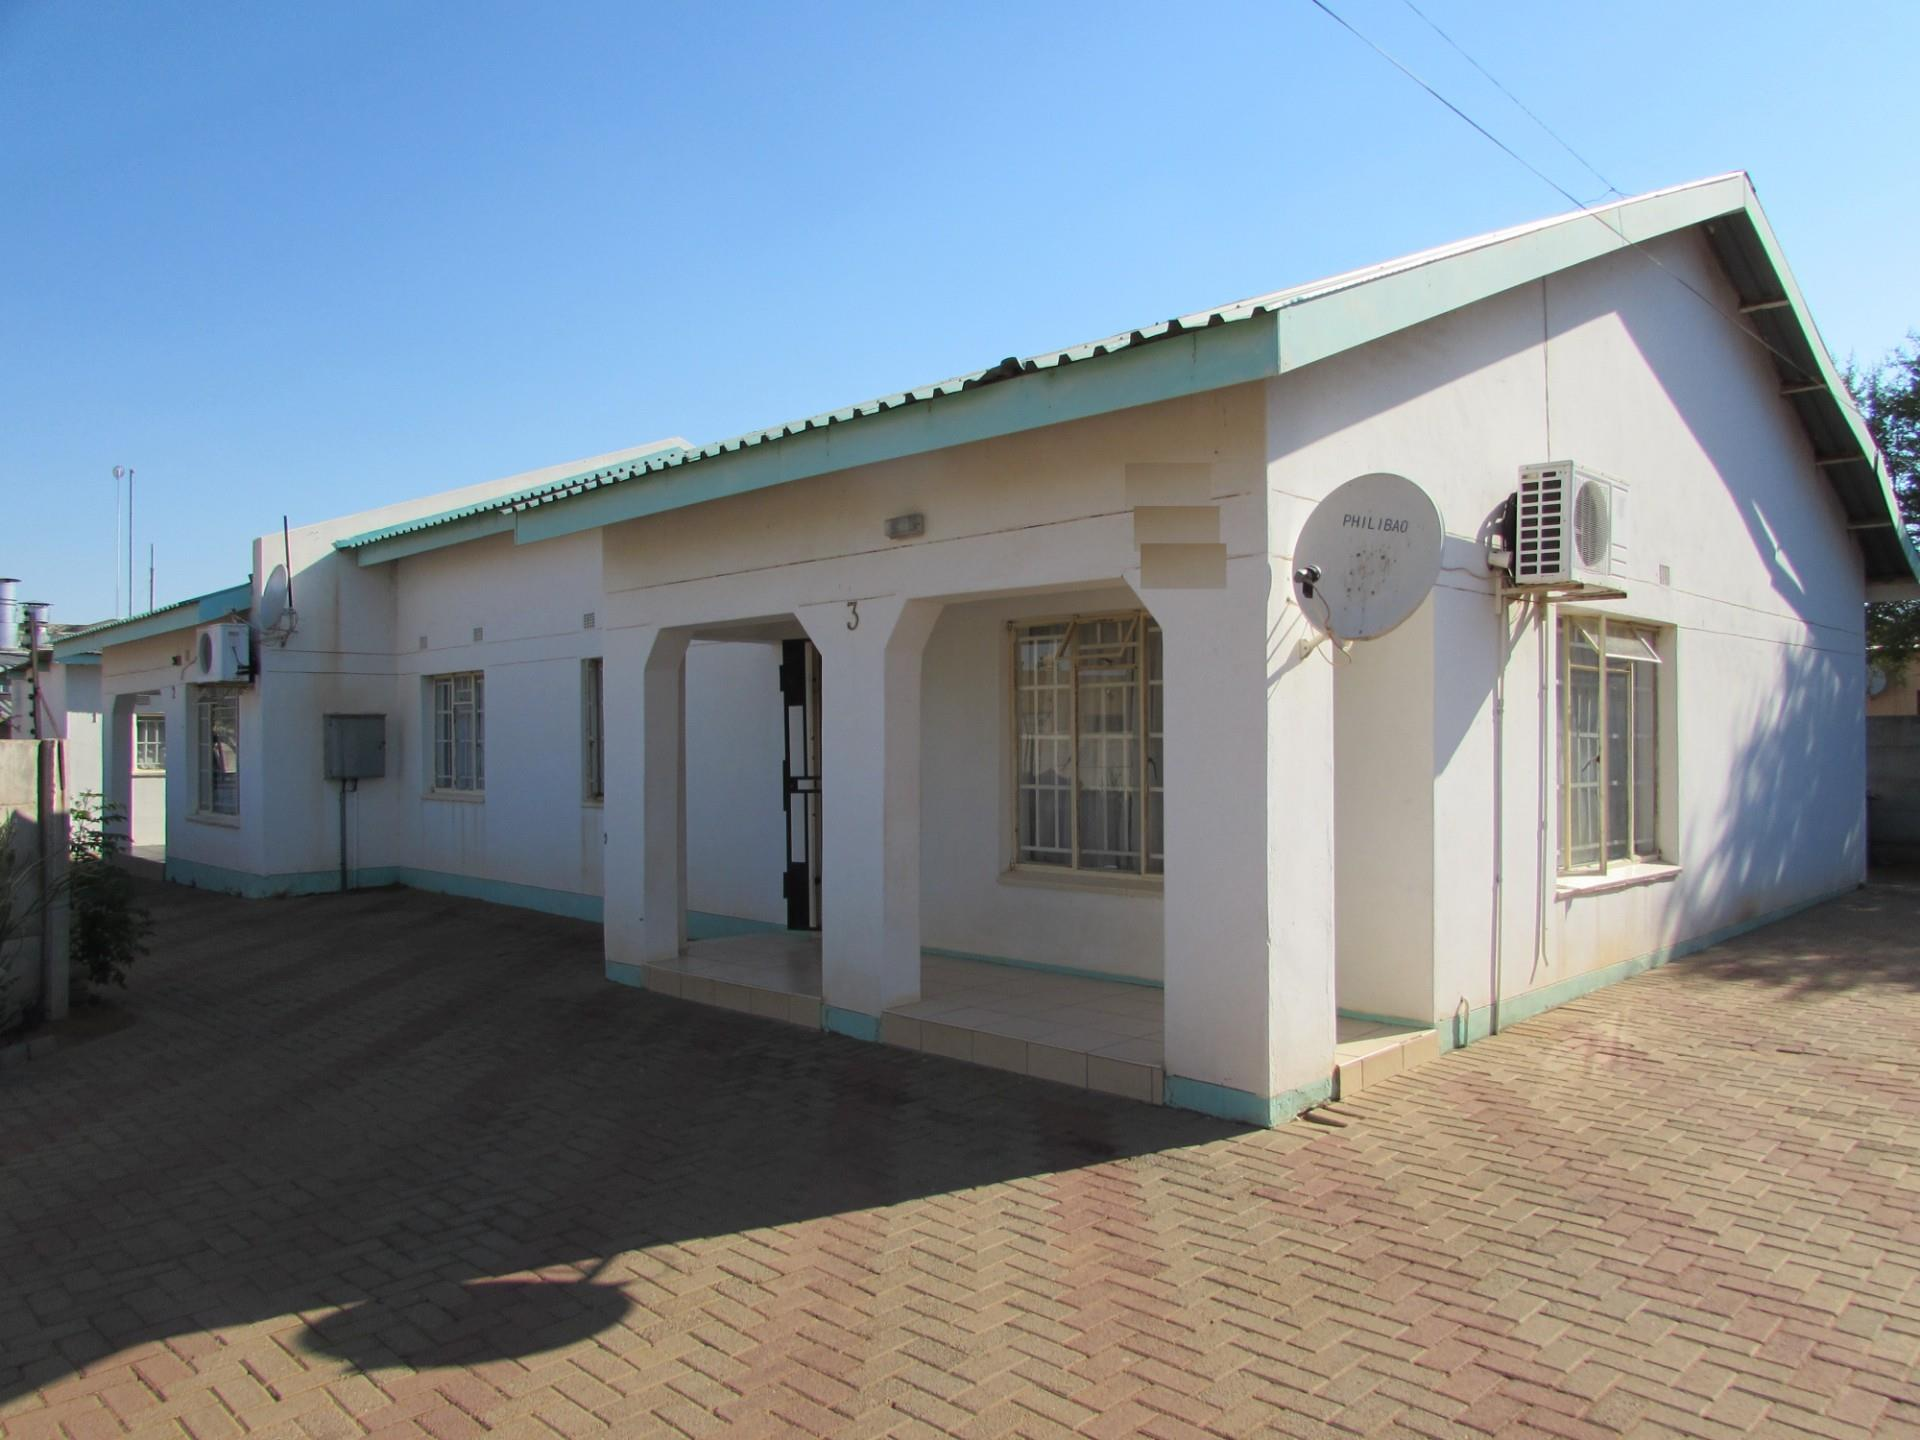 5 Bedroom House In Gaborone Re Max